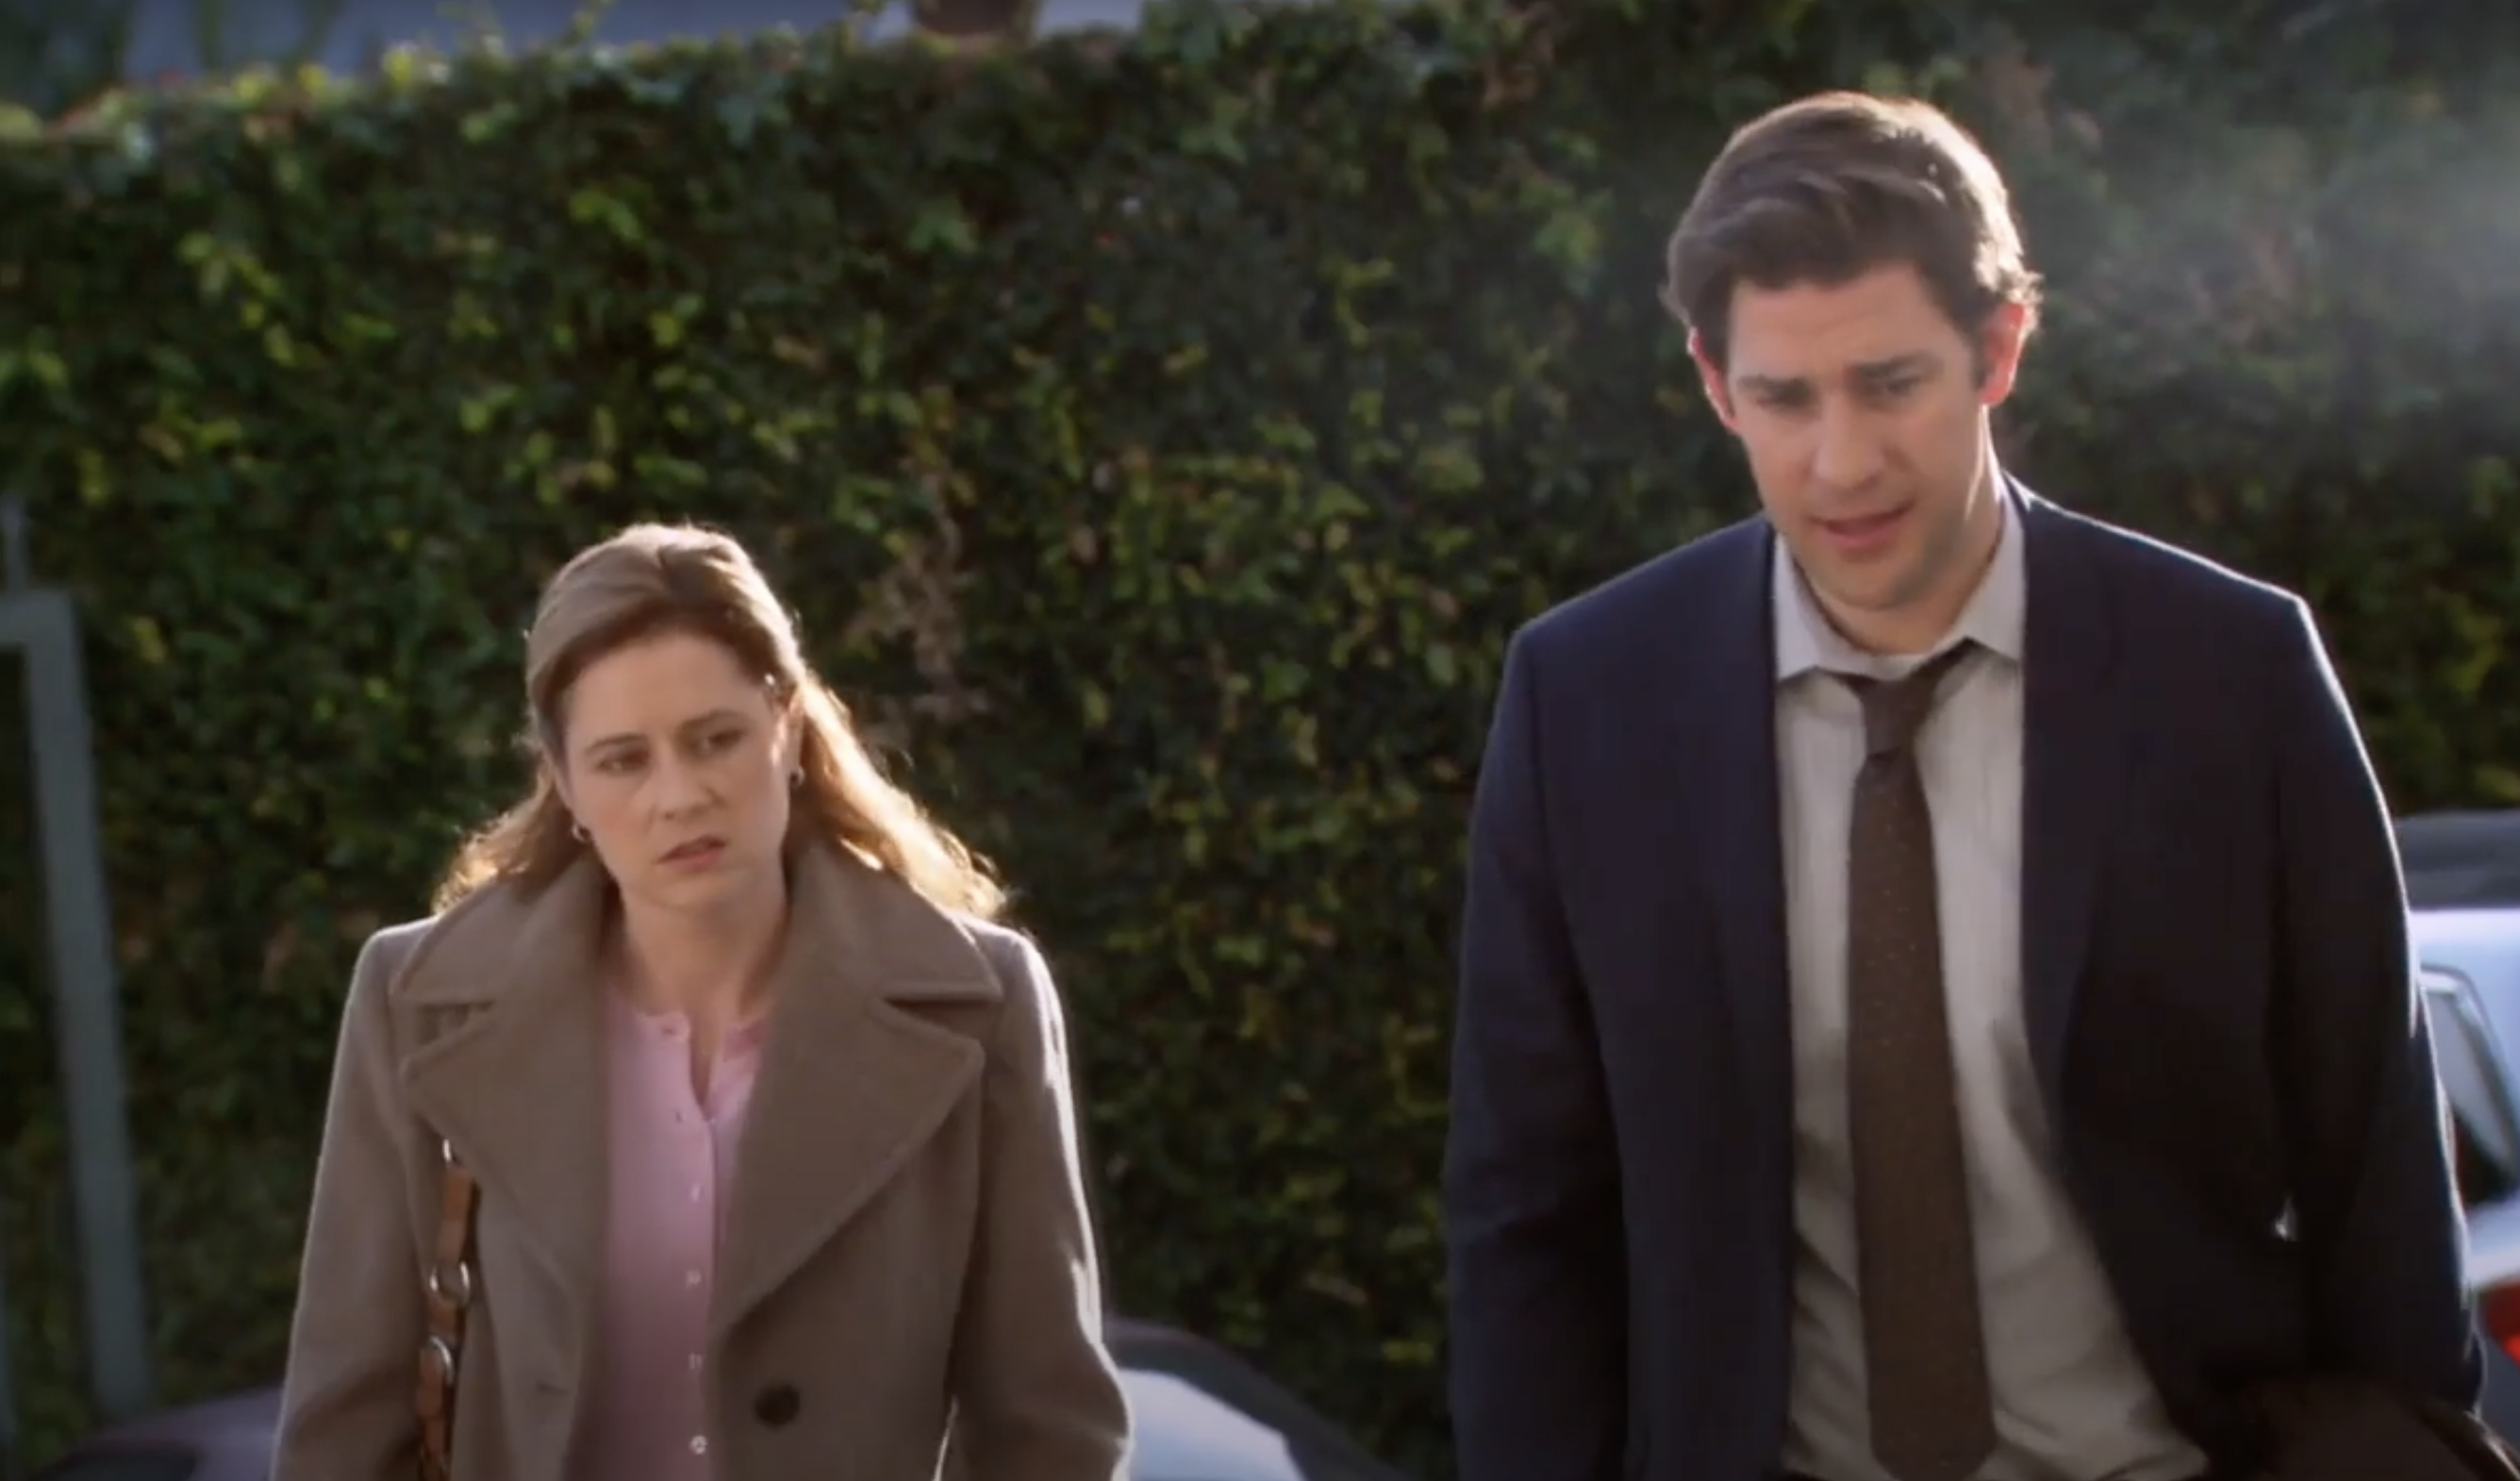 Jim and Pam walking together with annoyed expressions on their faces